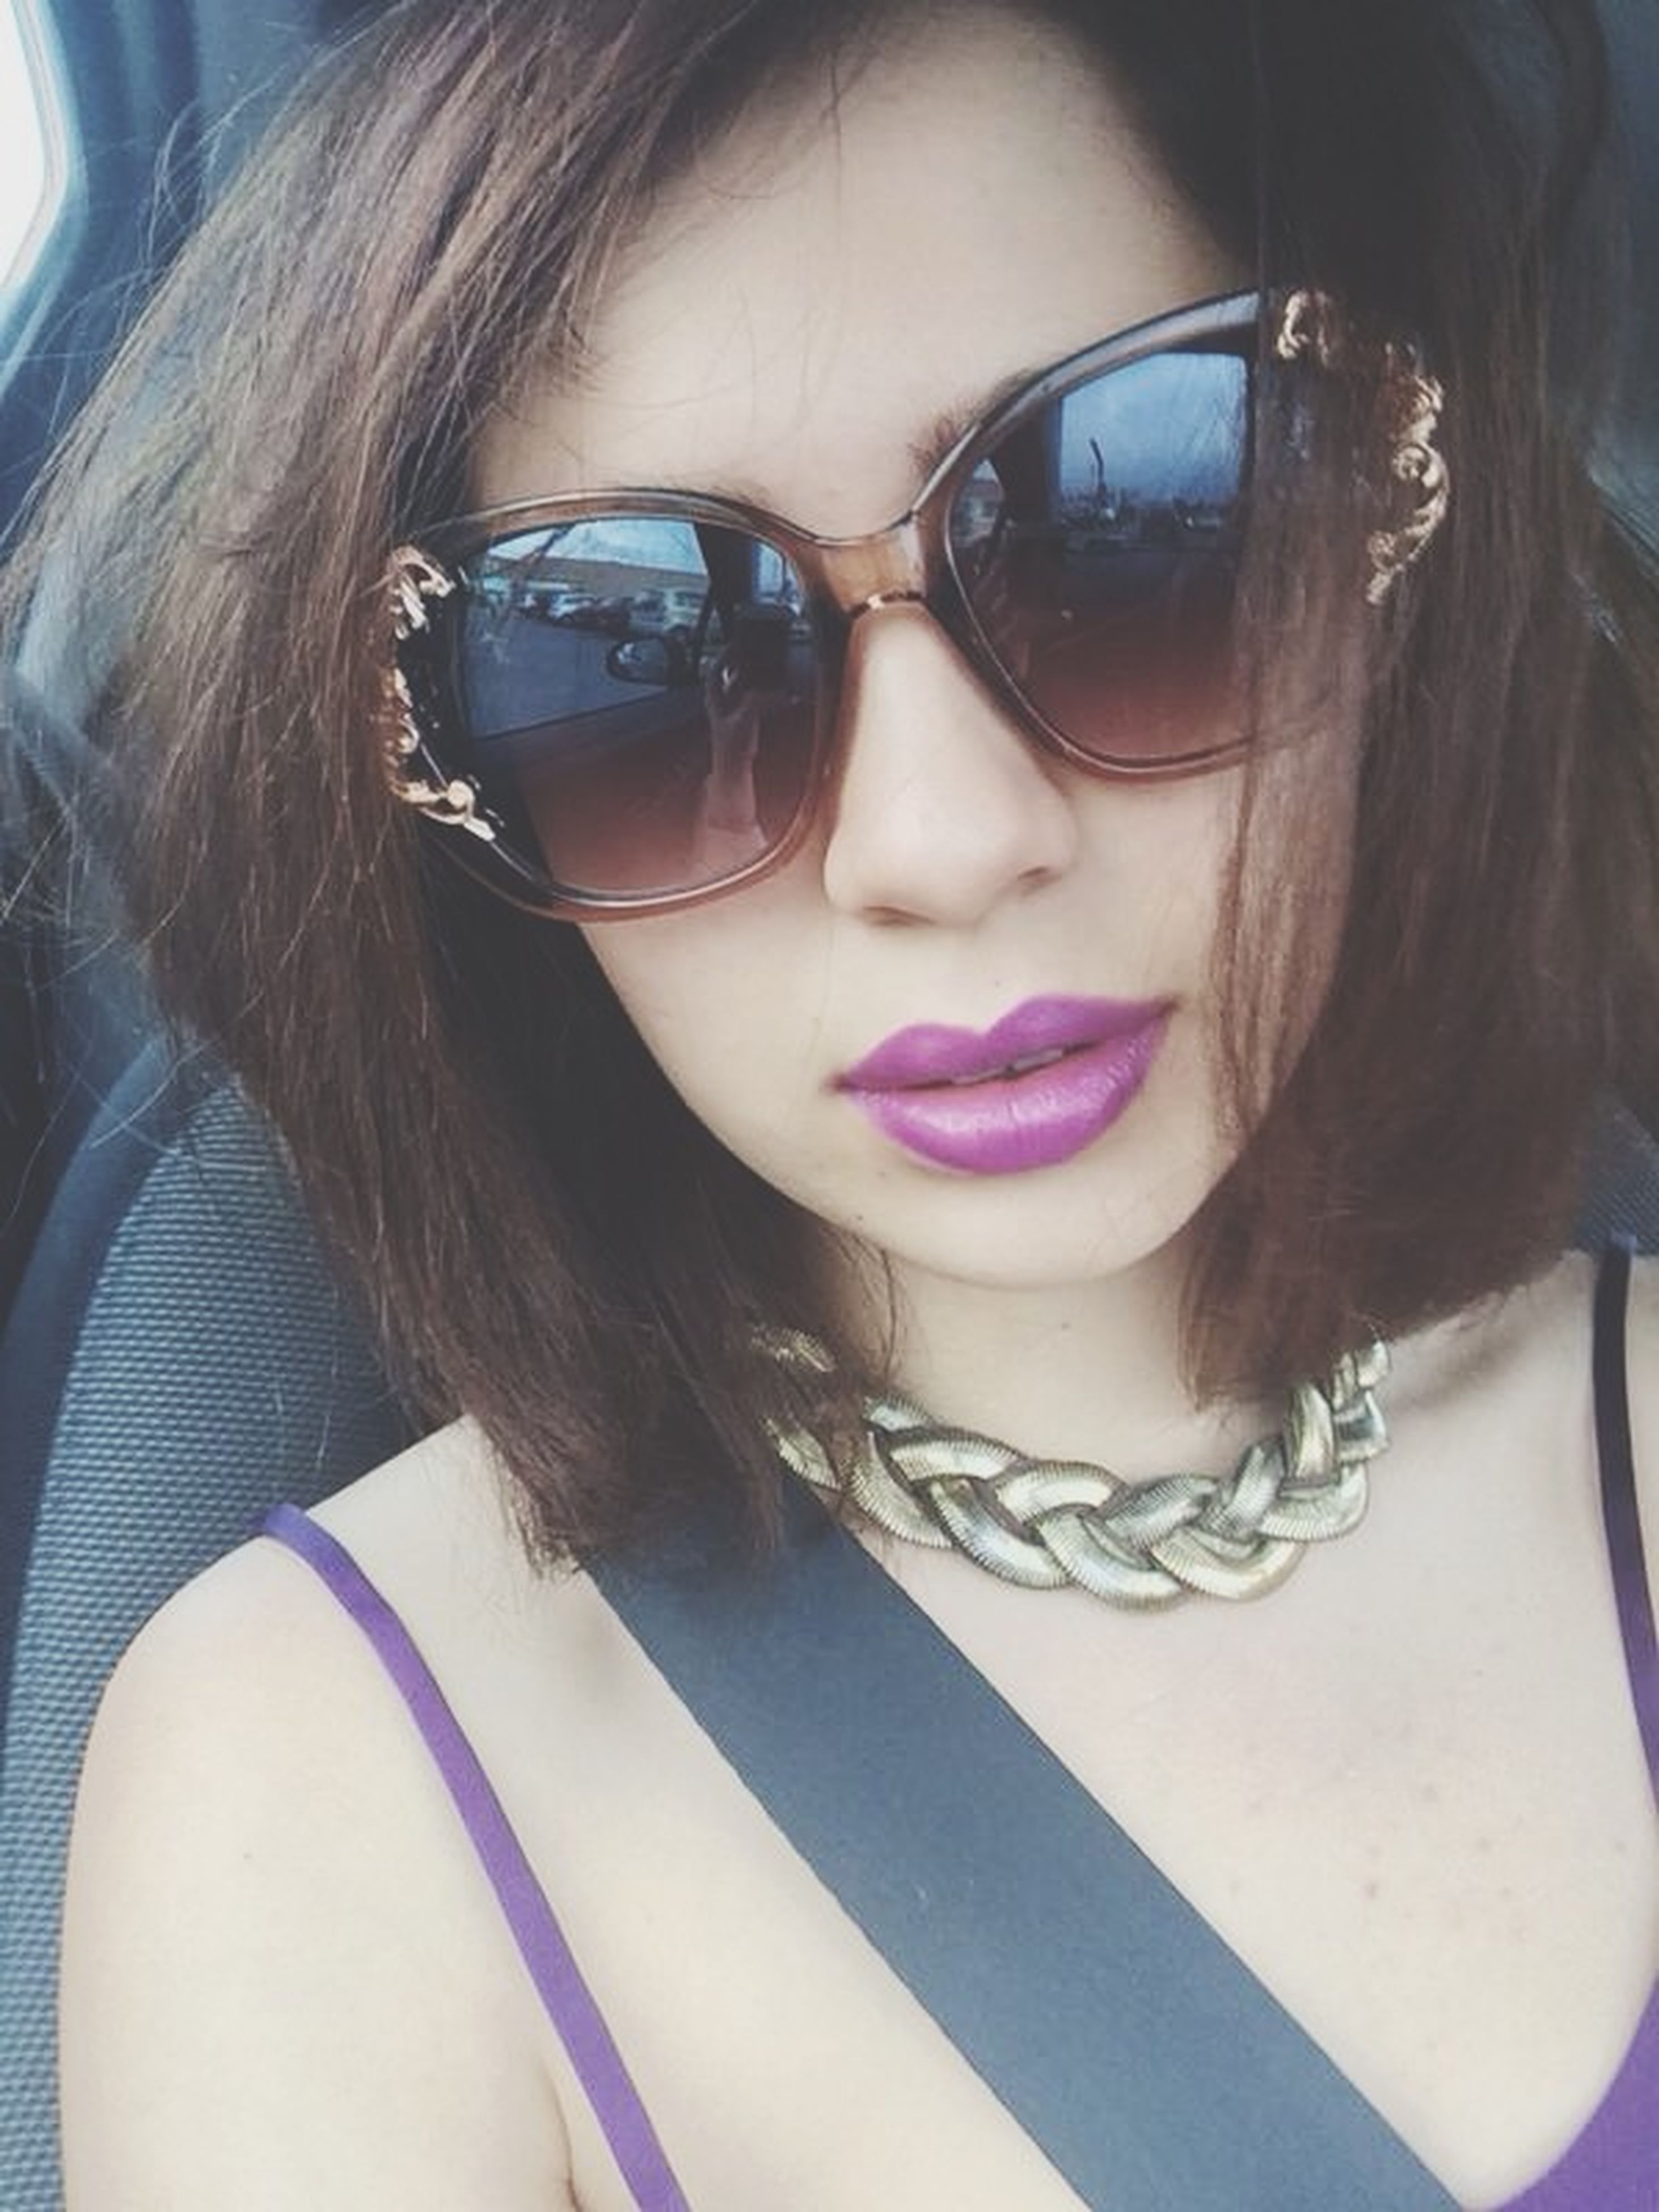 young adult, young women, portrait, person, sunglasses, looking at camera, lifestyles, leisure activity, headshot, transportation, smiling, front view, long hair, car, close-up, mode of transport, head and shoulders